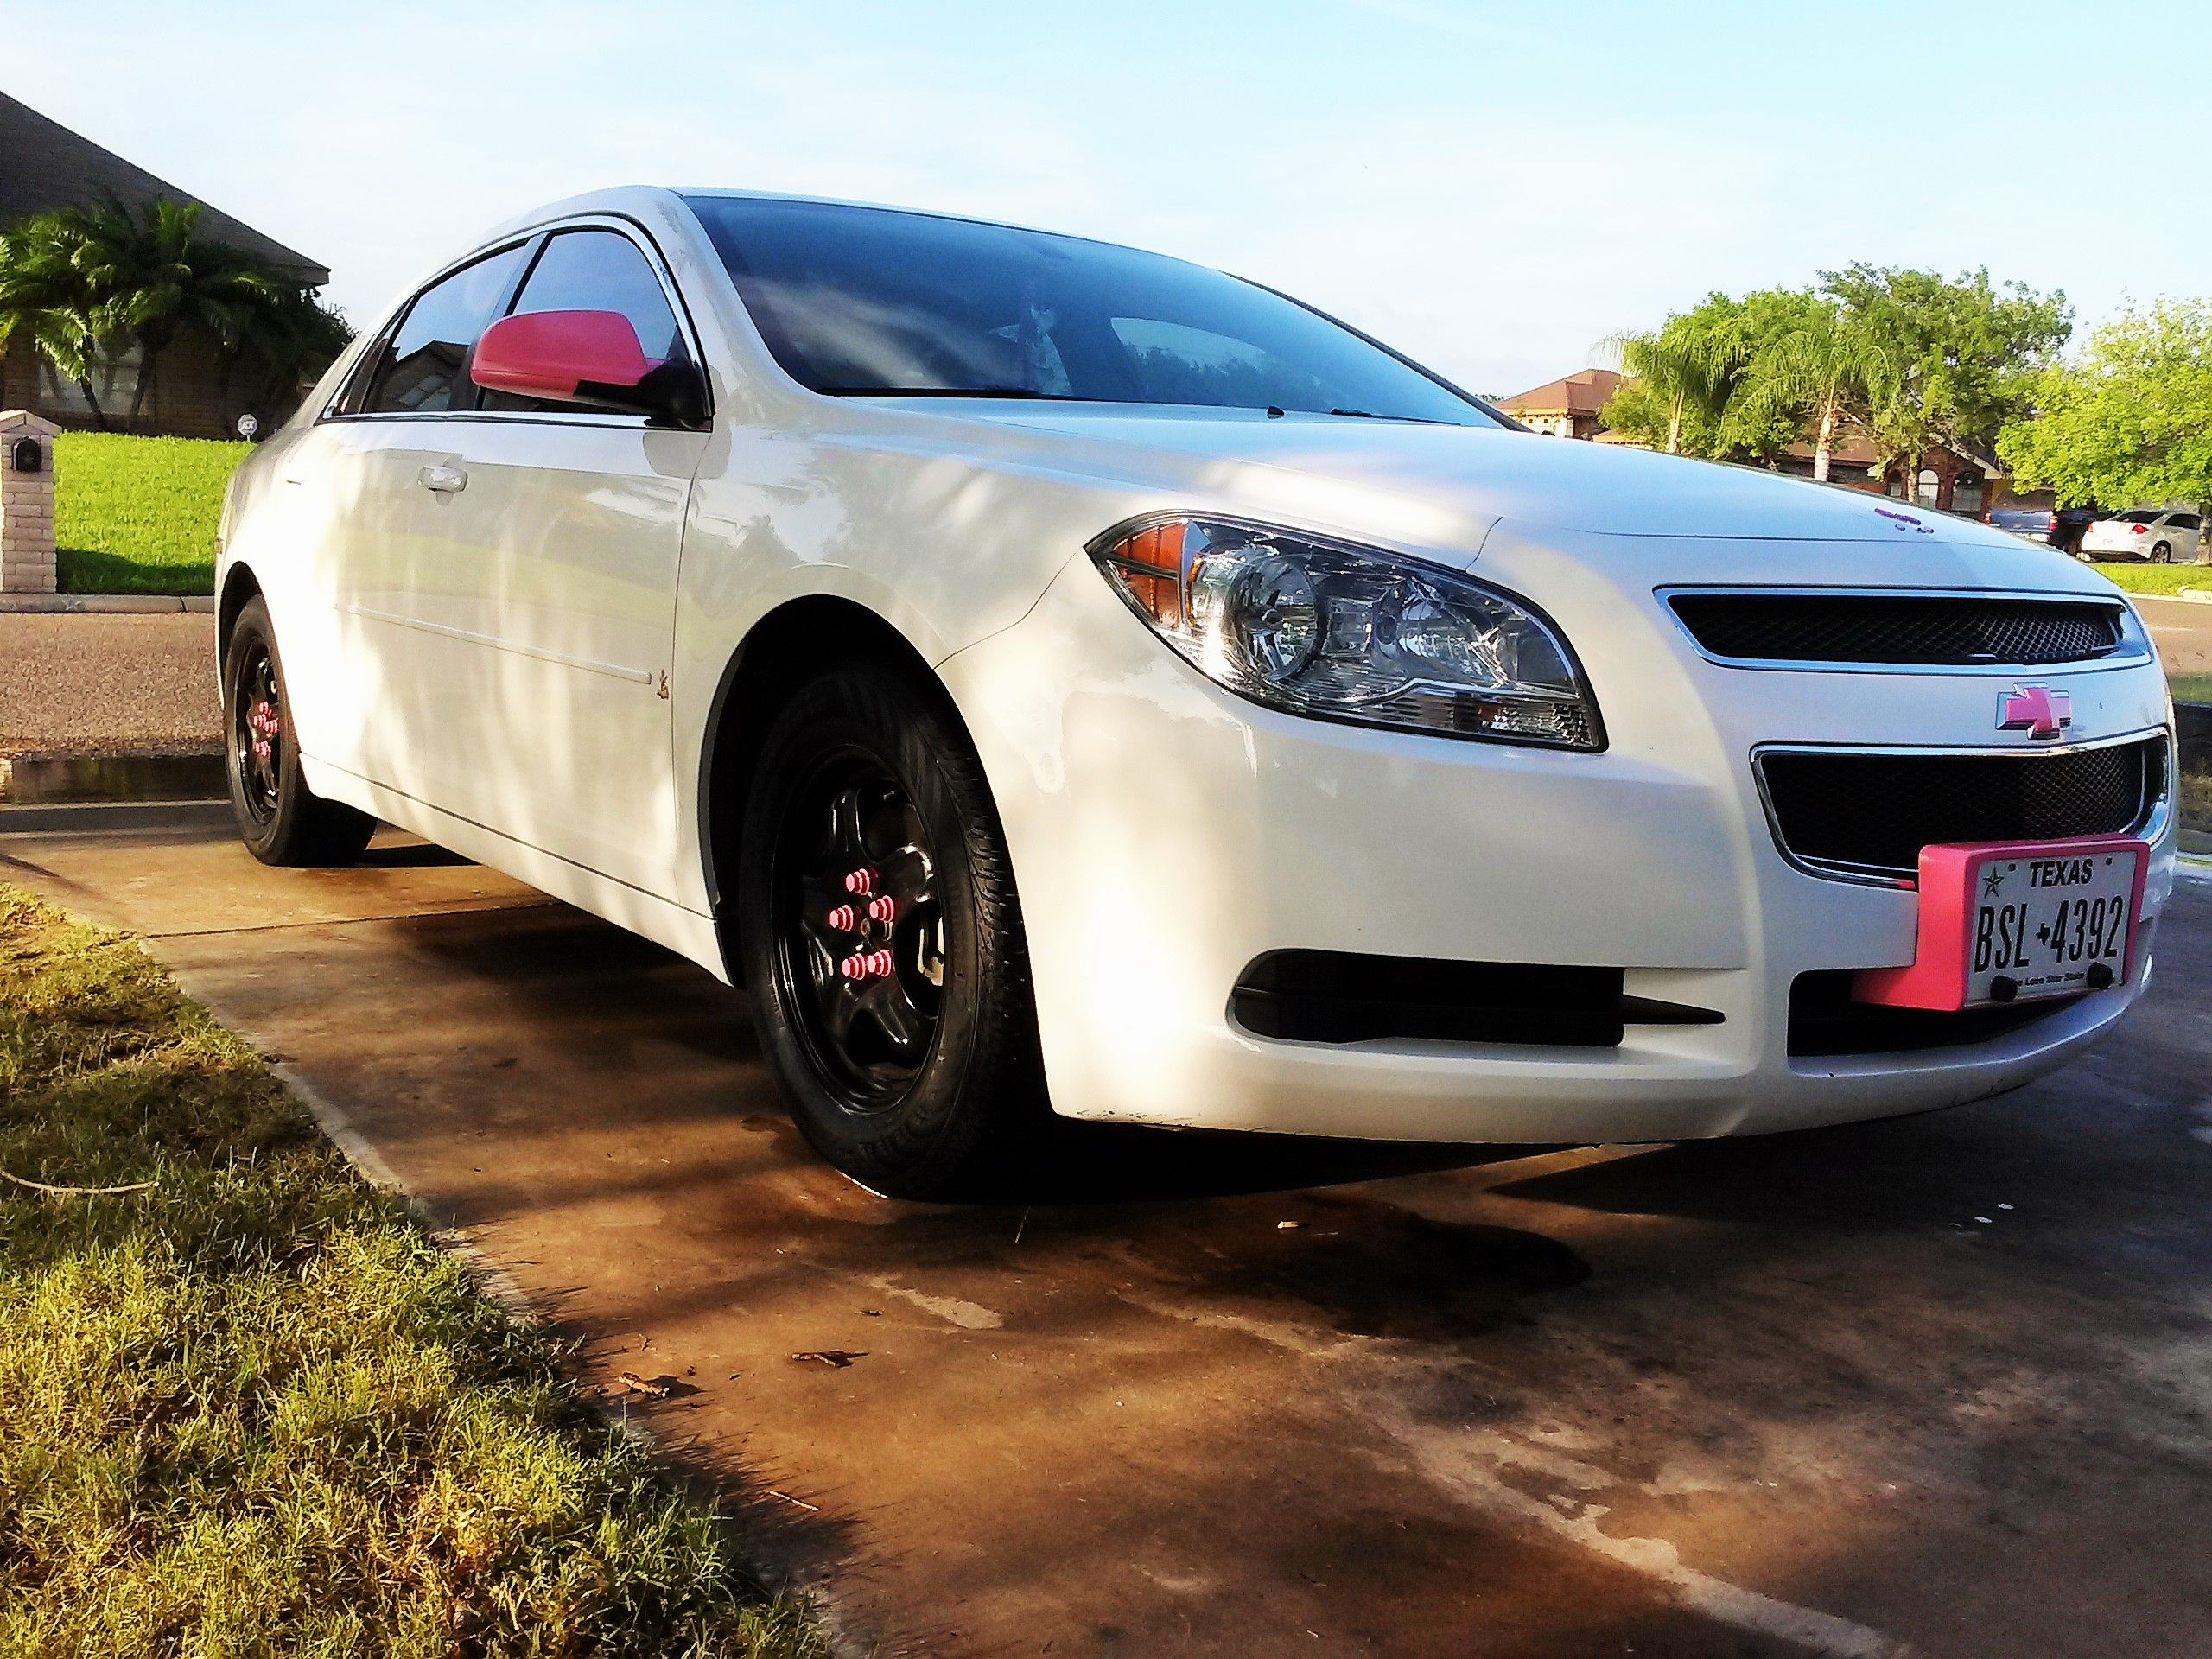 2012 chevy malibu lt reminds me of my car love it best car 2012 chevy malibu lt reminds me of my car love it best car ever cool pinterest 2012 chevy malibu malibu lt and cars buycottarizona